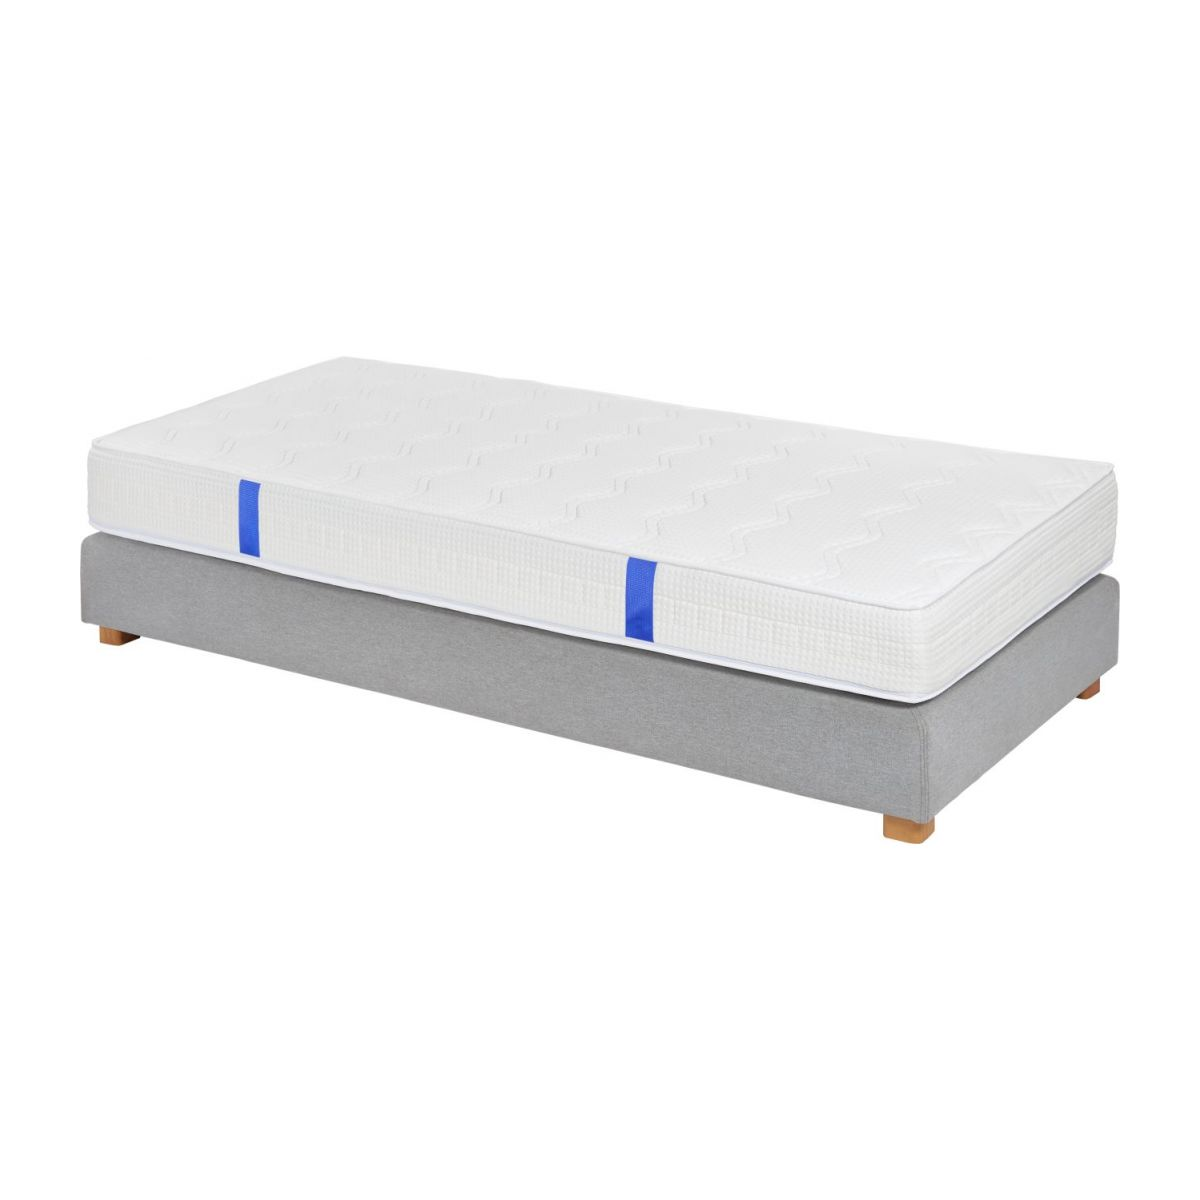 Spring mattress, width 20 cm, 80x200cm - medium support n°5